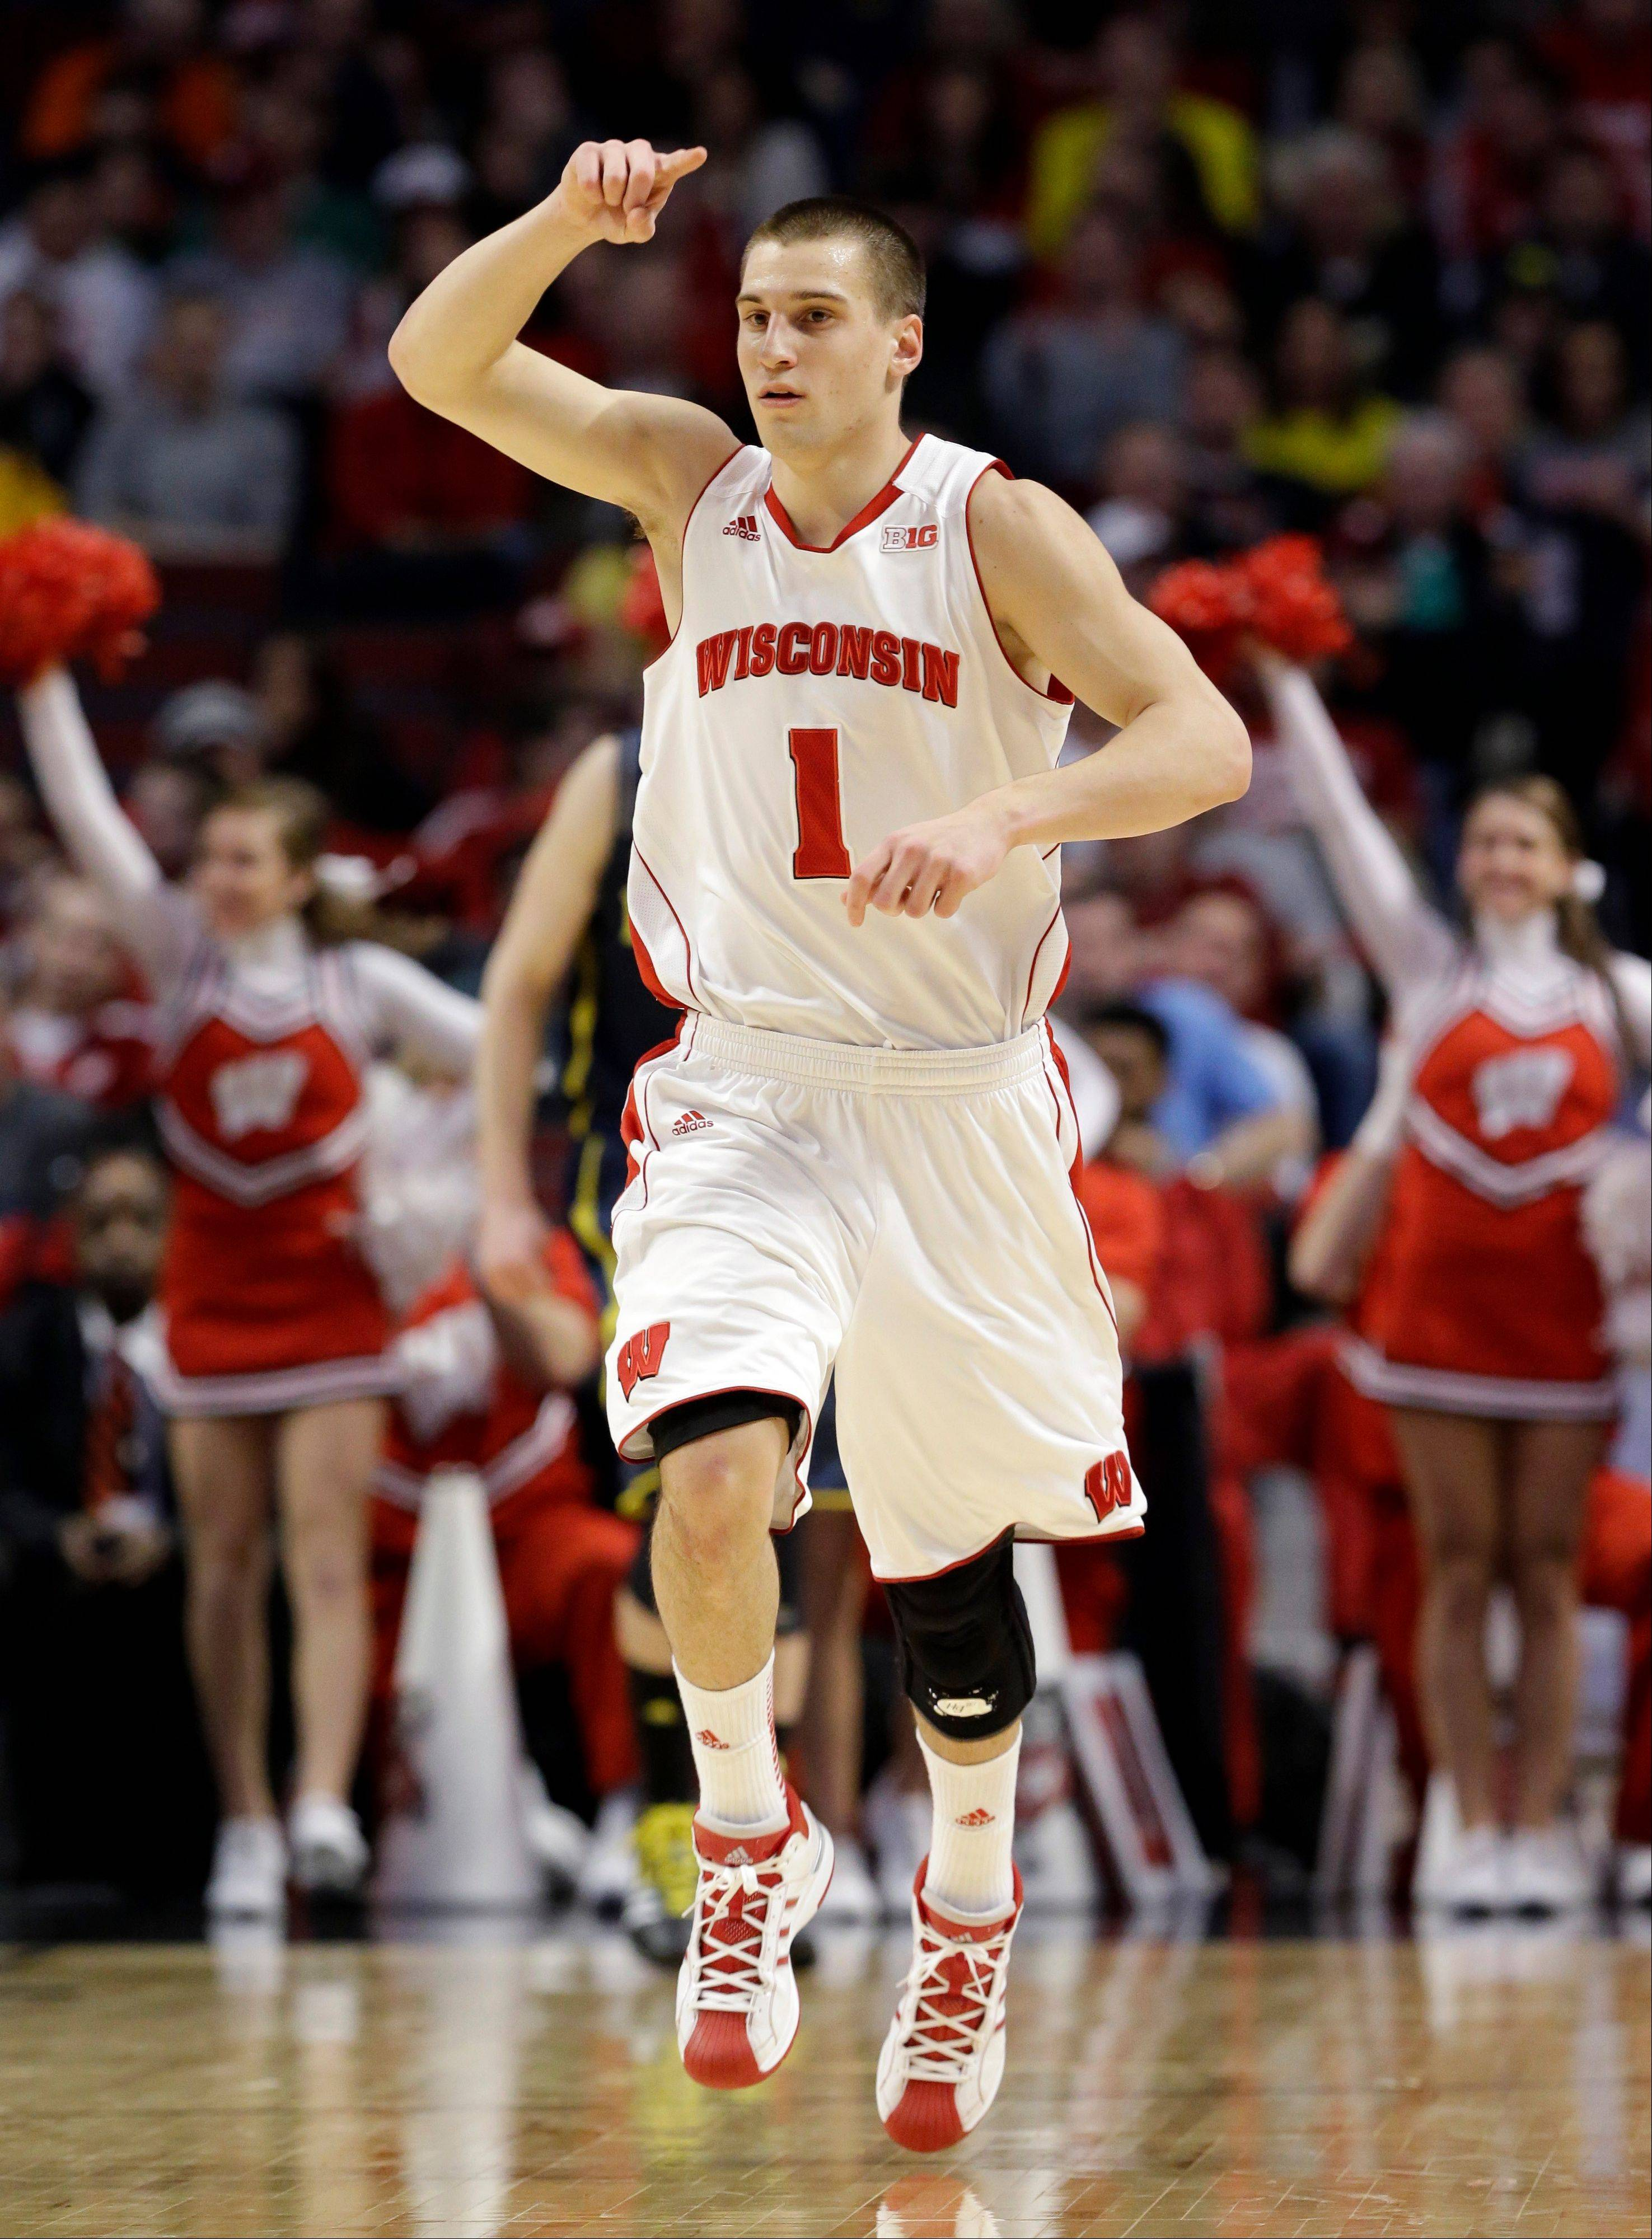 Wisconsin's Ben Brust reacts after scoring during the second half of an NCAA college basketball game at the Big Ten tournament against MichiganFriday, March 15, 2013, in Chicago.